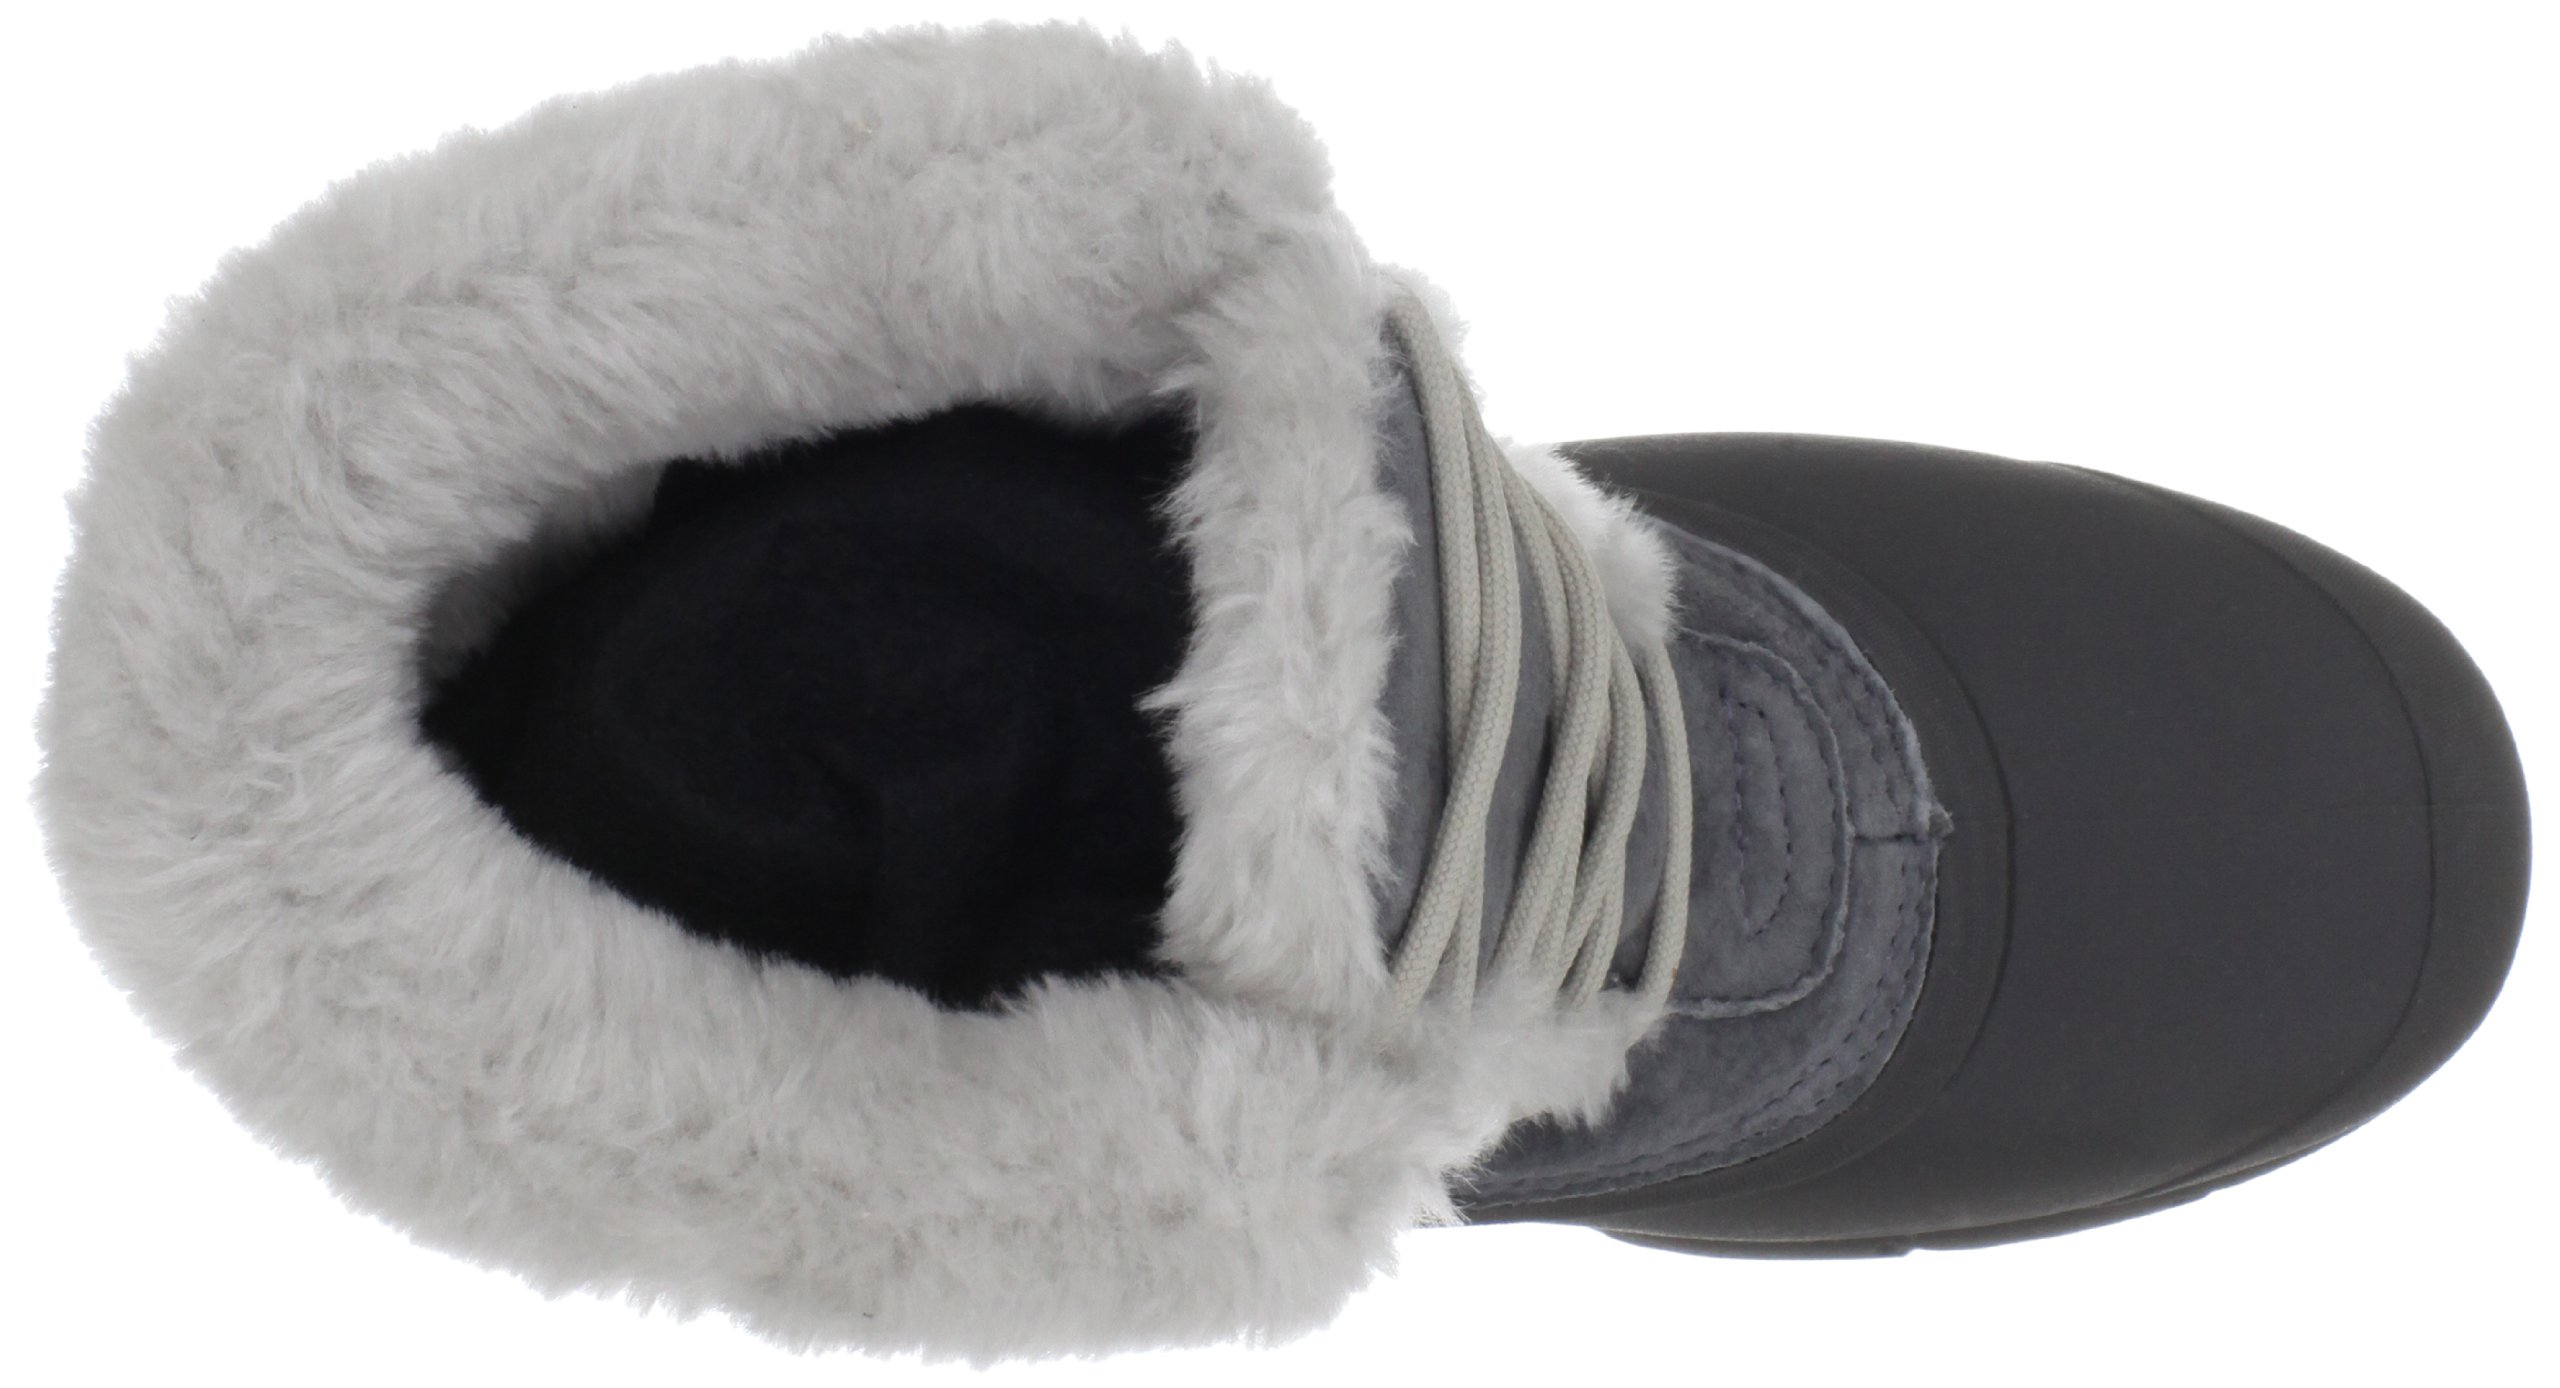 Sorel Women's Snow Angel Lace Boot,Charcoal,8 M US by SOREL (Image #7)